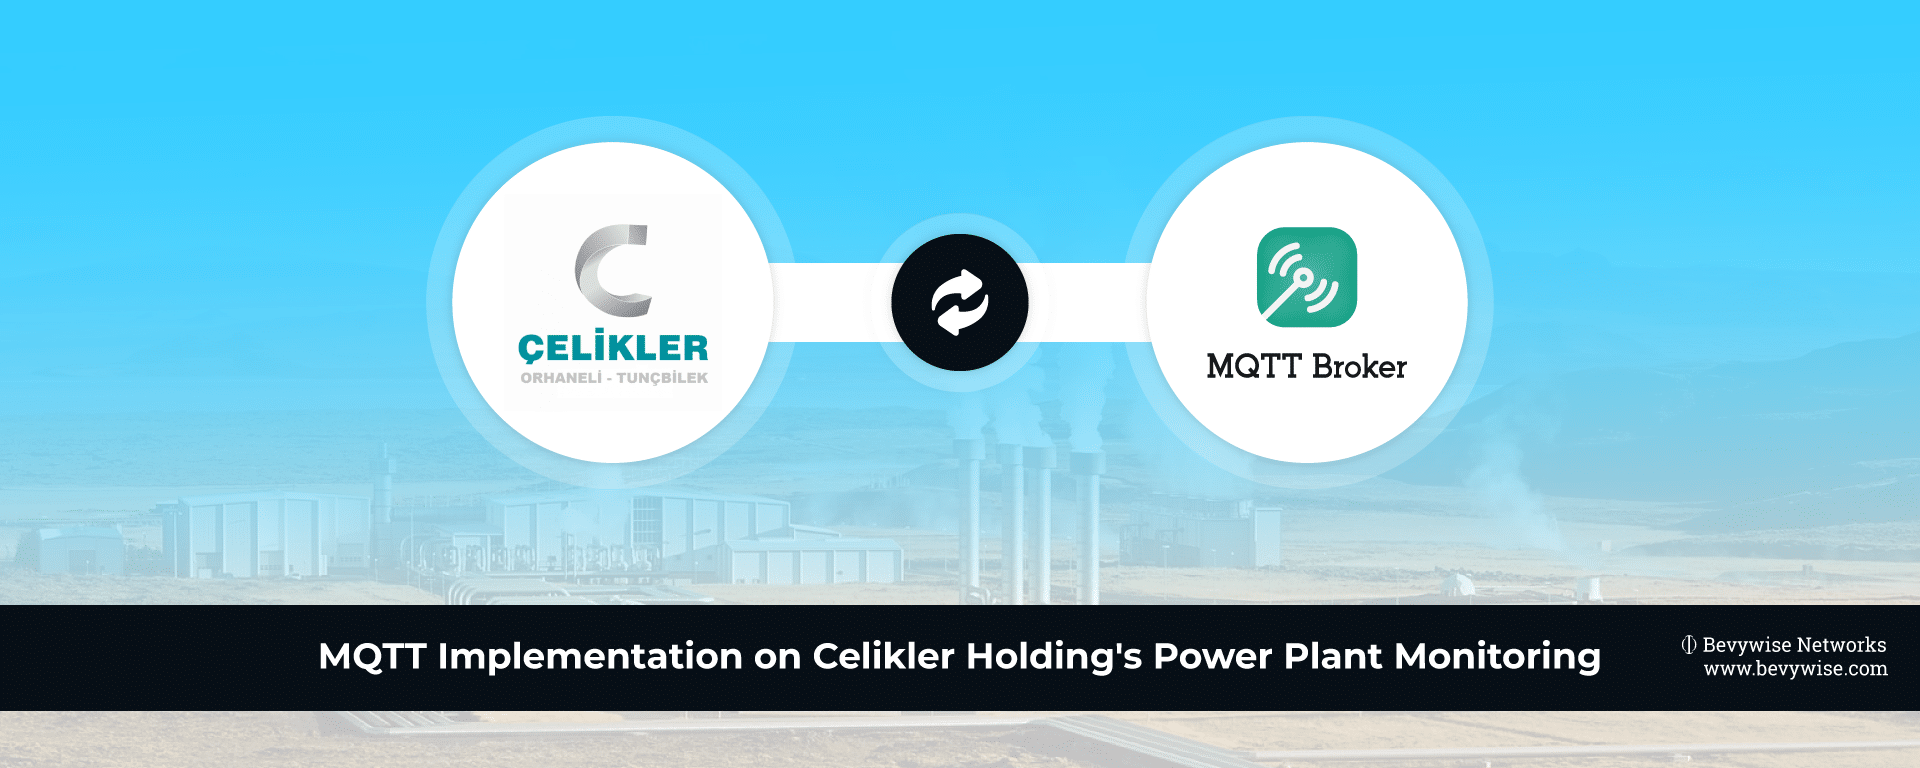 MQTT Implementation on Celikler Holding's Power Plant Monitoring